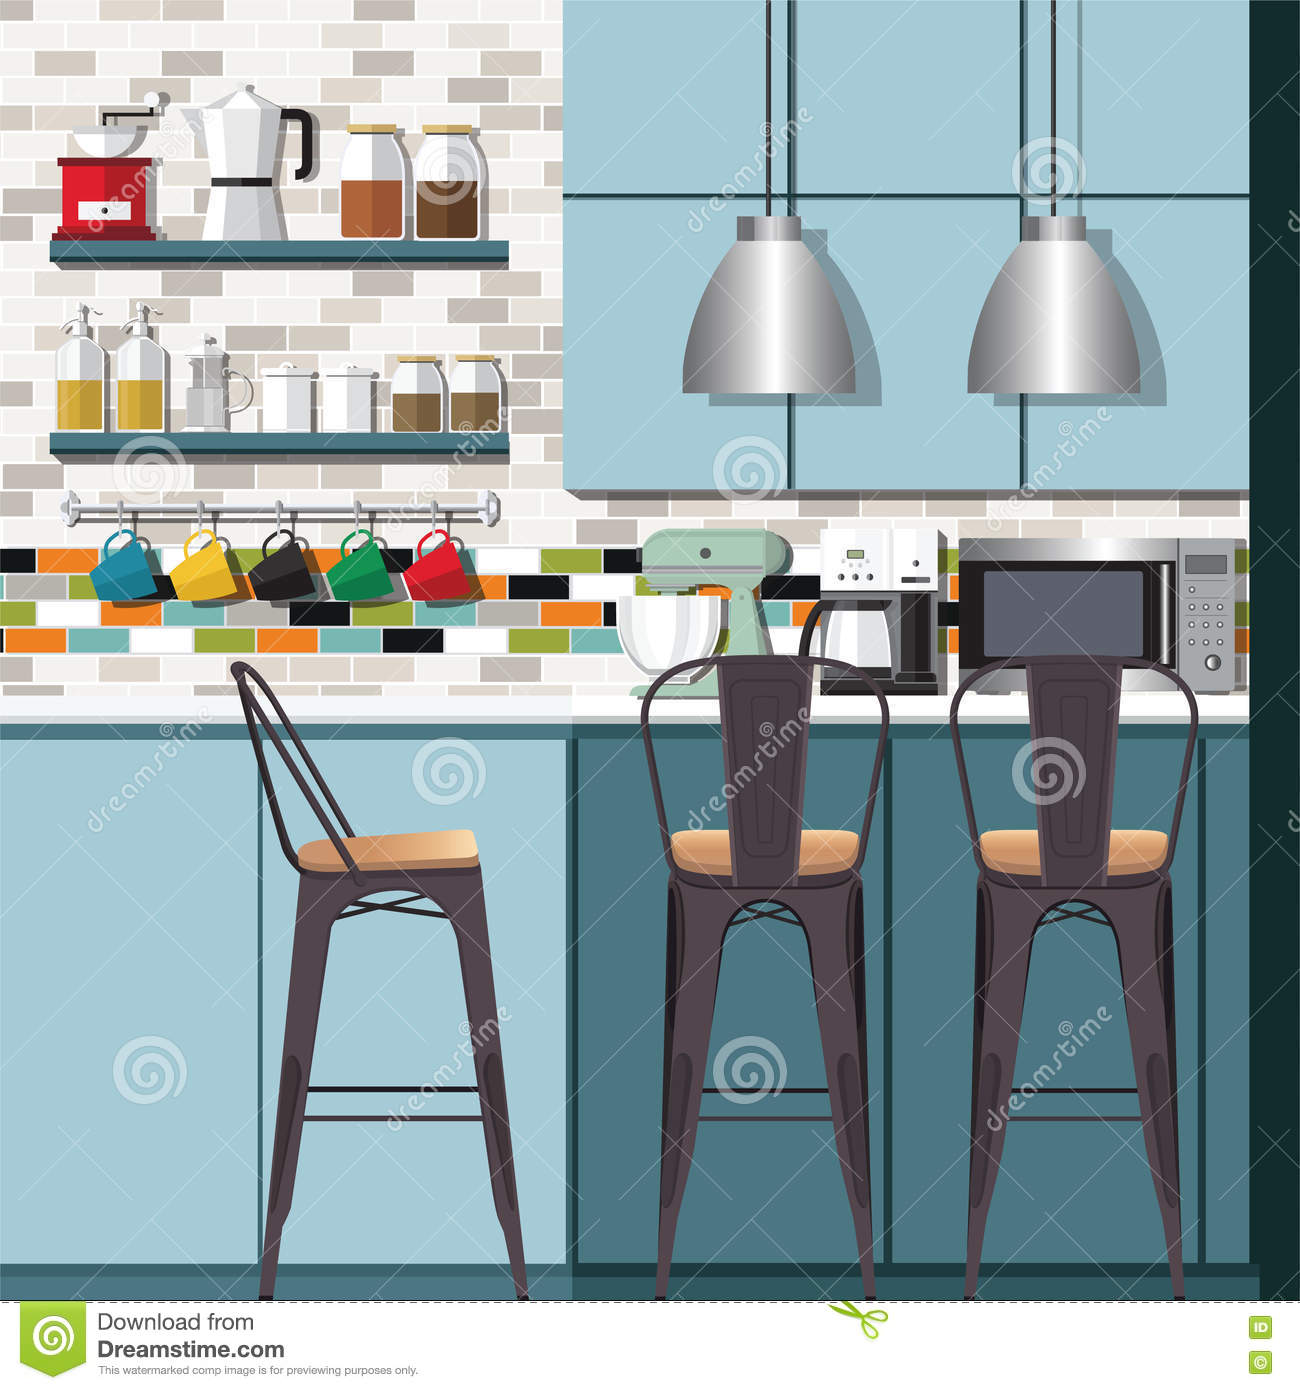 Kitchen Ideas Design Stock Vector Image 71207279